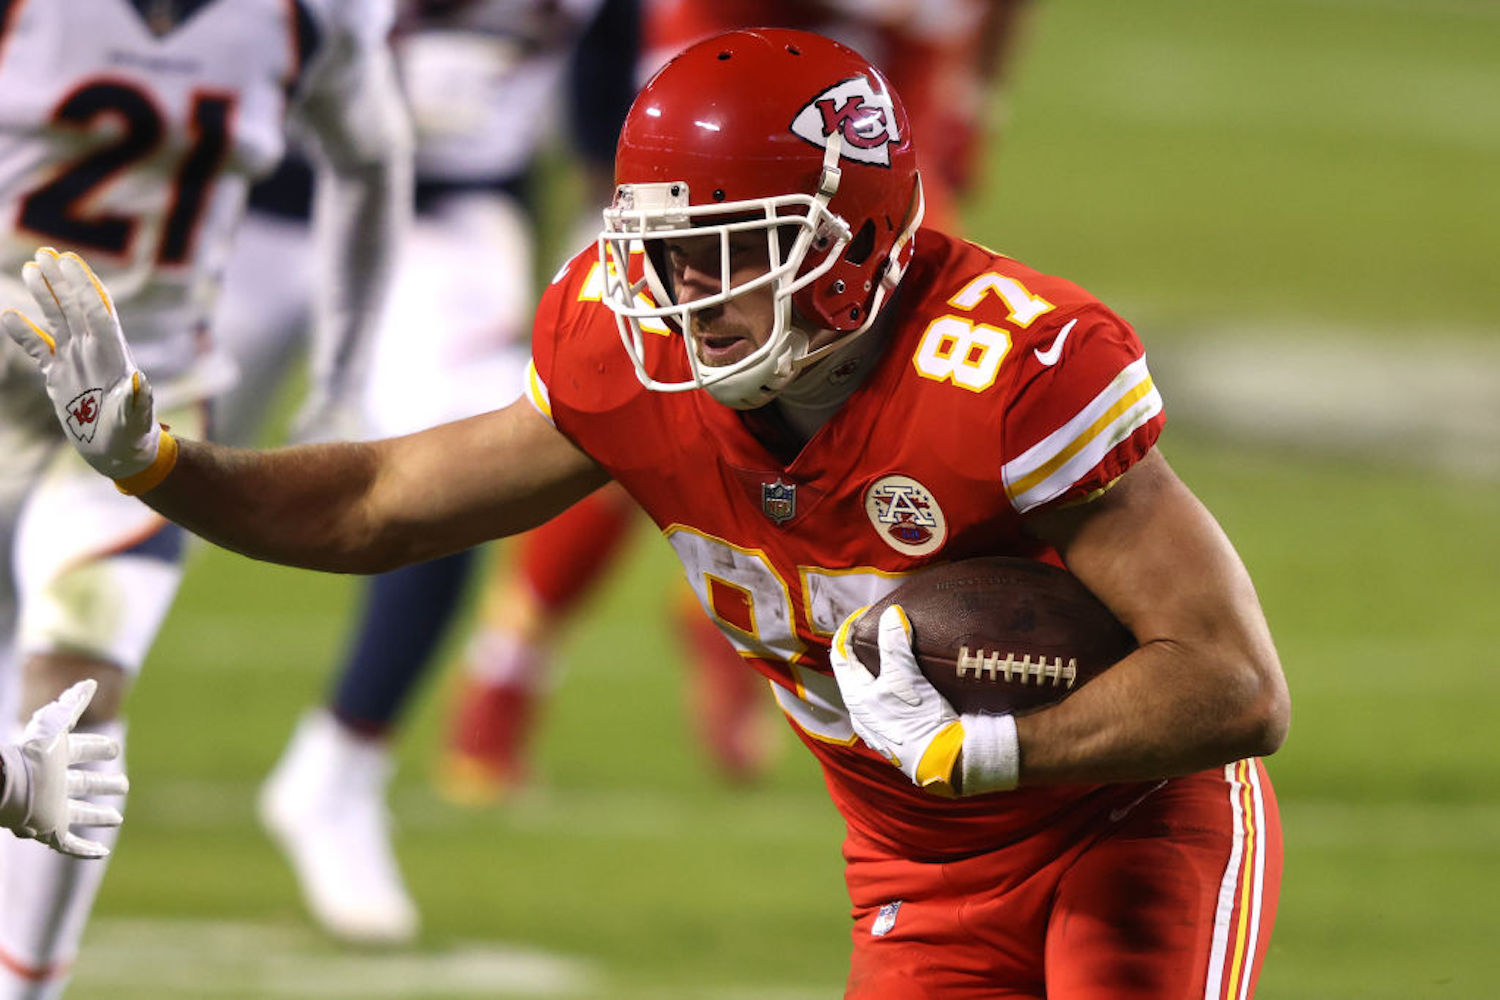 On Sunday night, Travis Kelce became the first tight end in NFL history to record 1,000 receiving yards in five seasons.